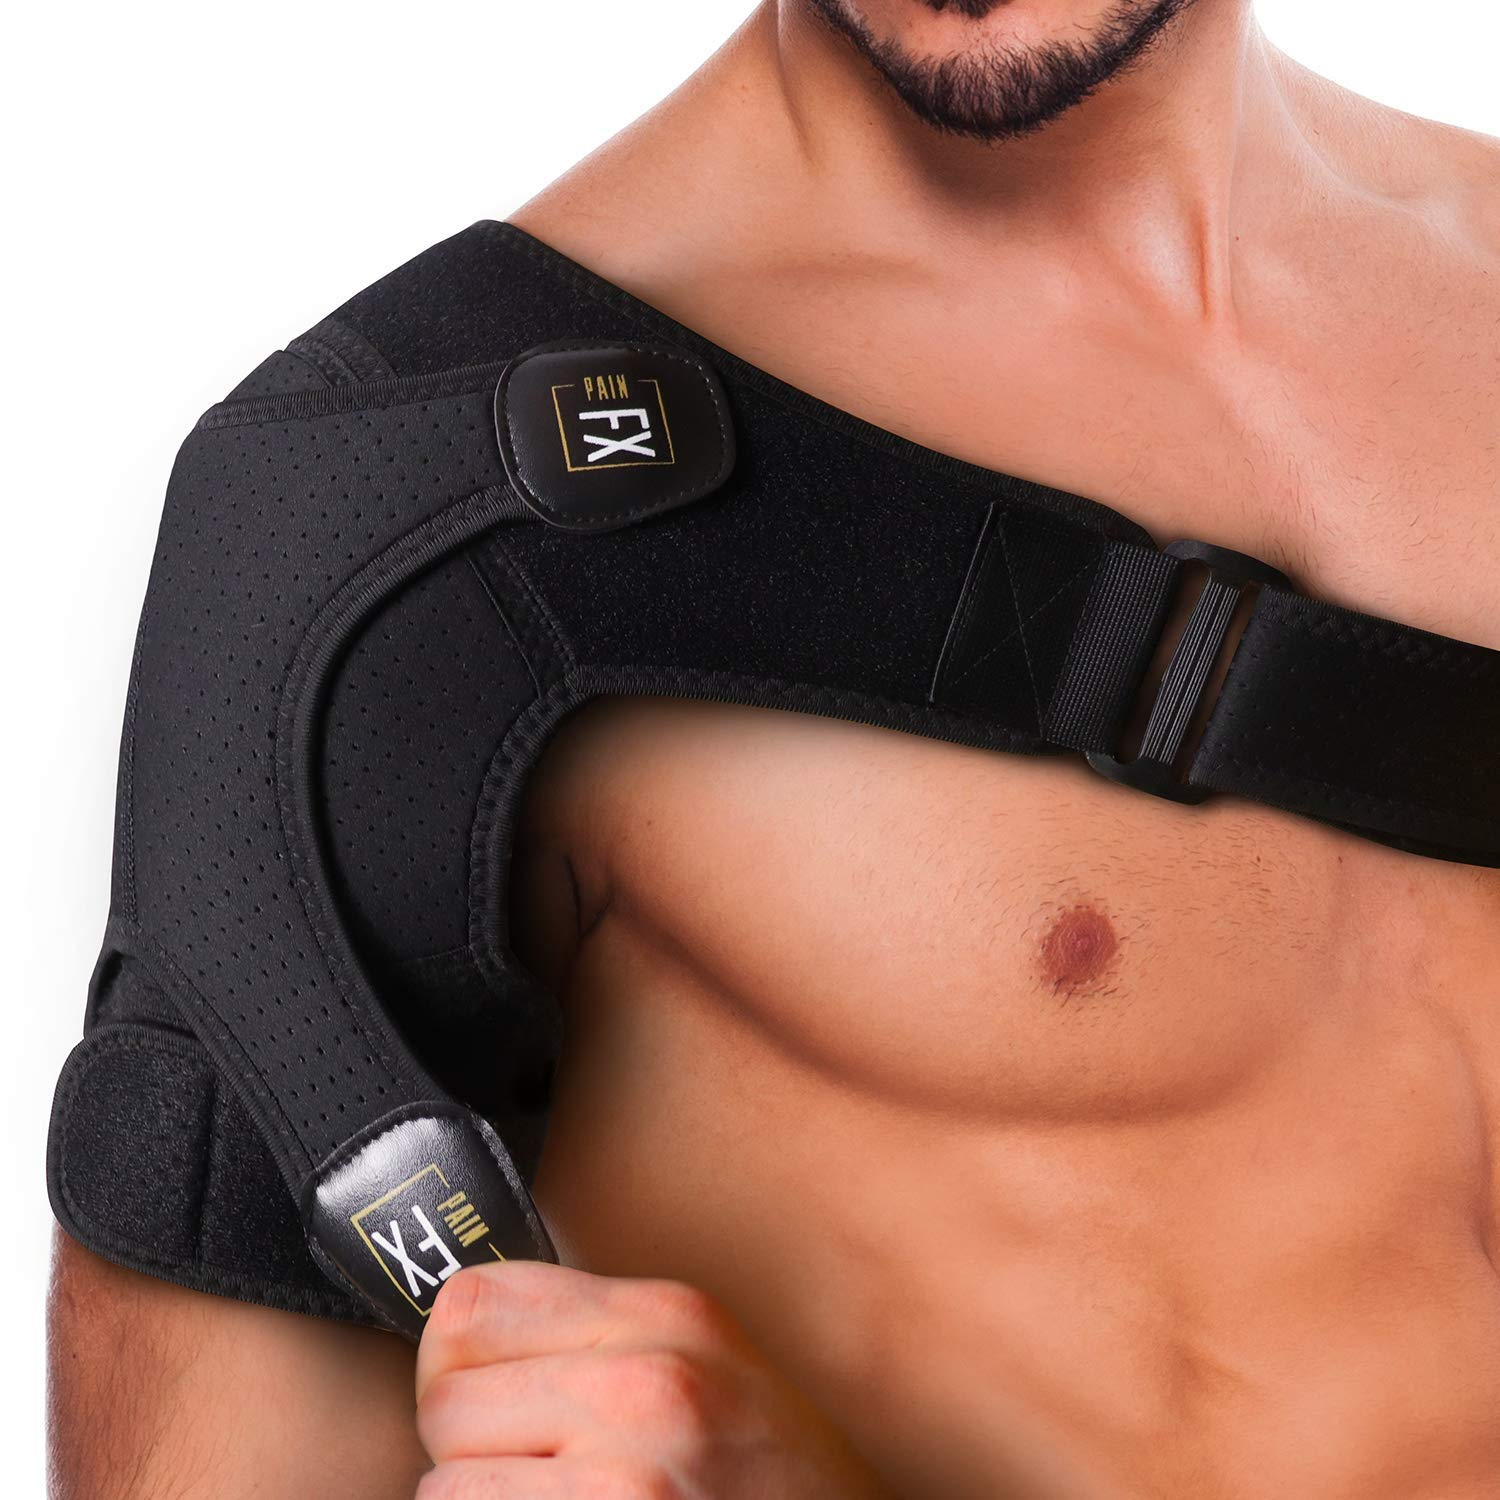 PainFX Shoulder Brace for Men with Rotator Cuff Support and Adjustable  Compression Sleeve -